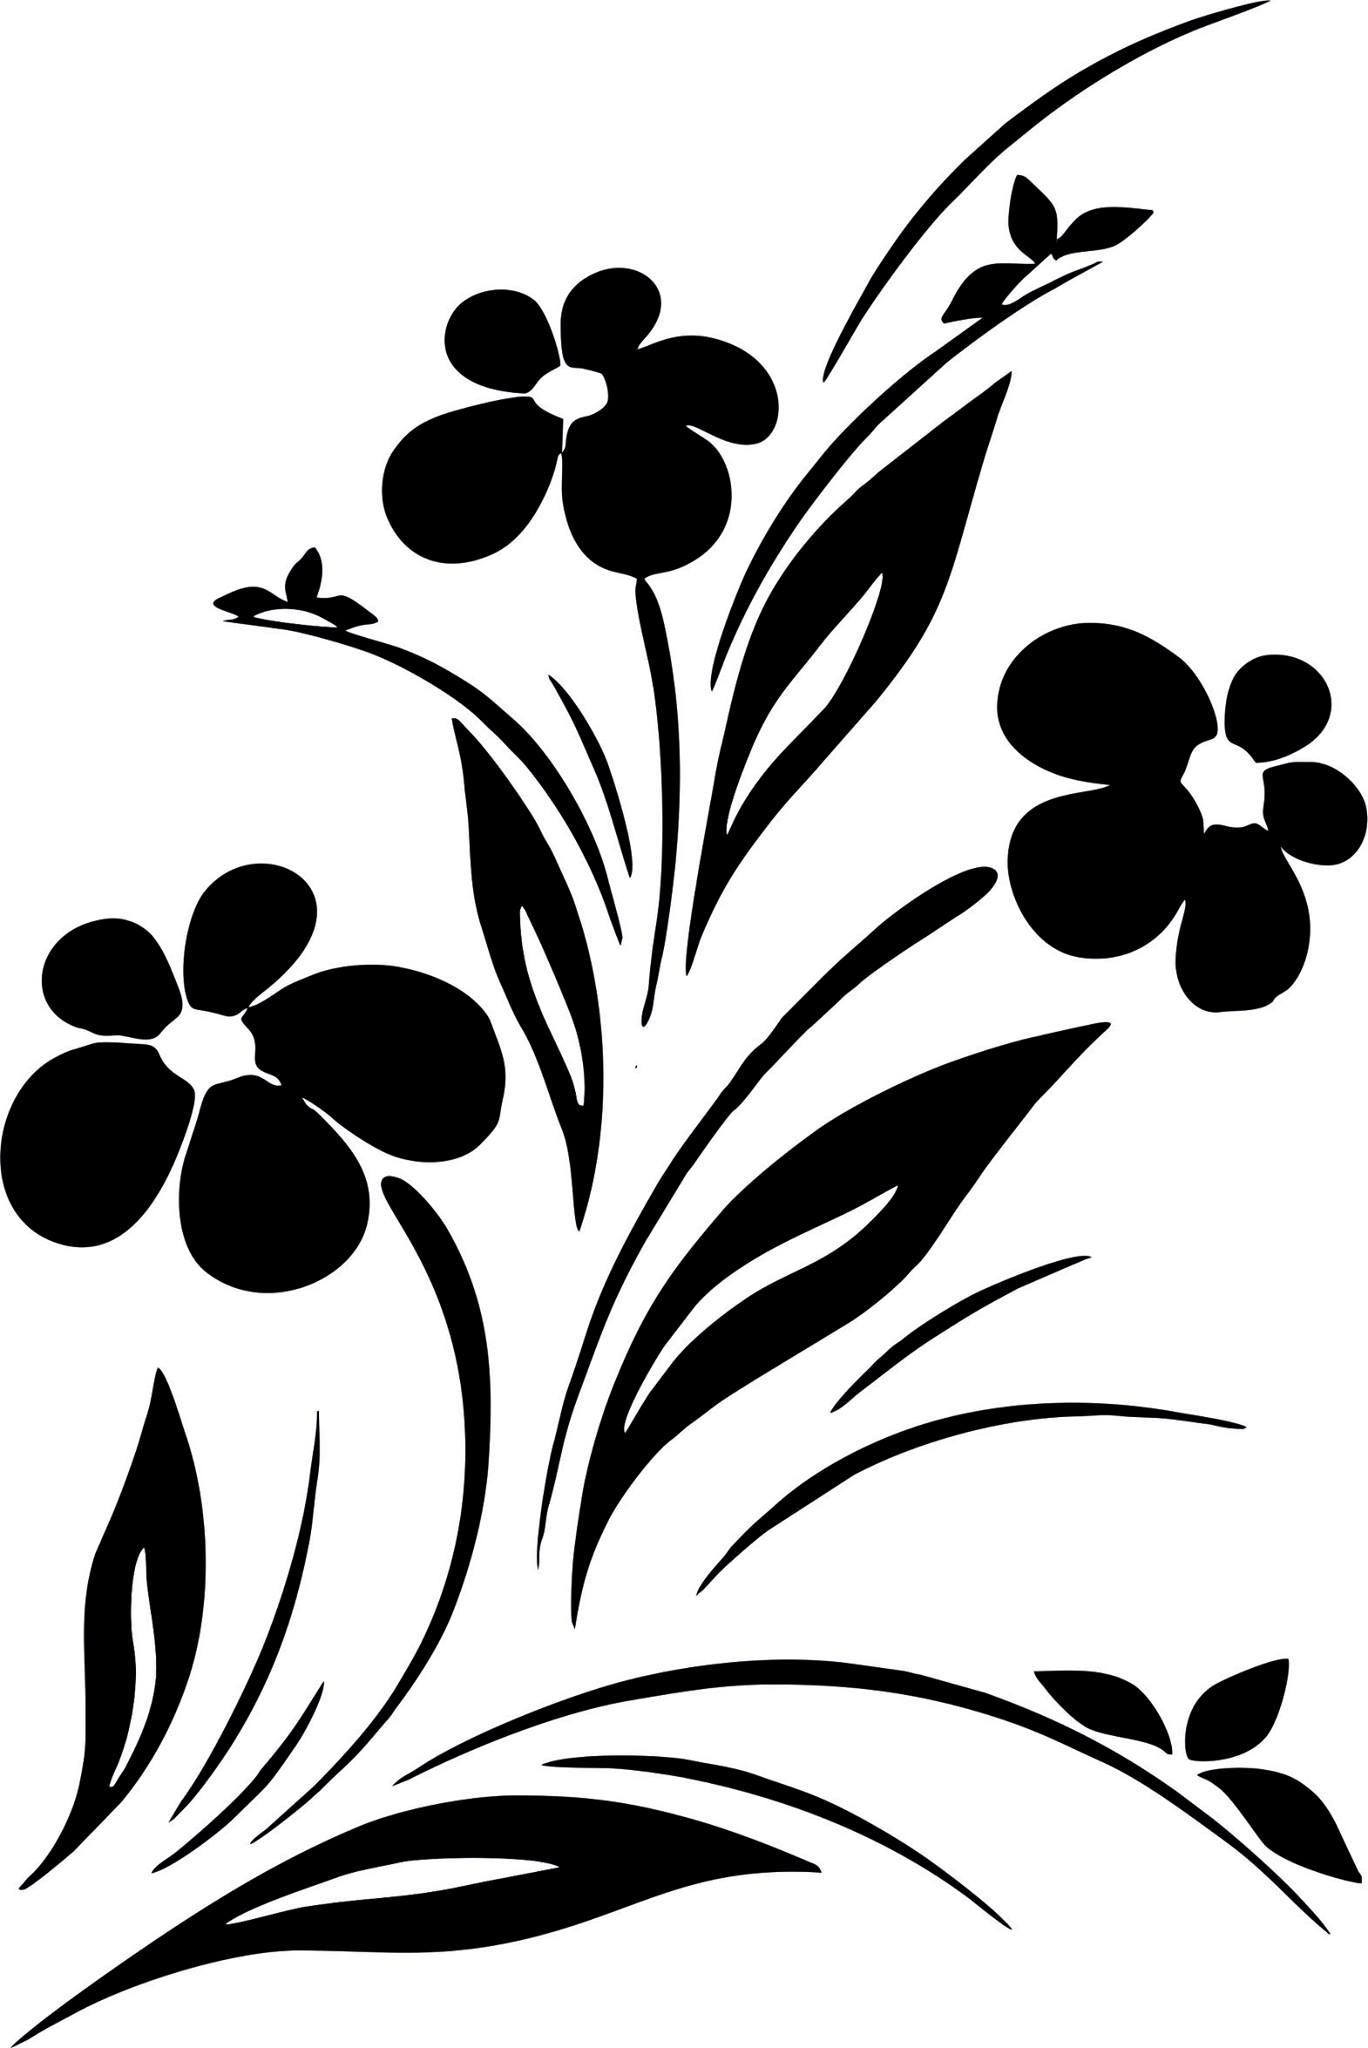 Simple Flower Designs Black And White Vector Art Jpg Image Free